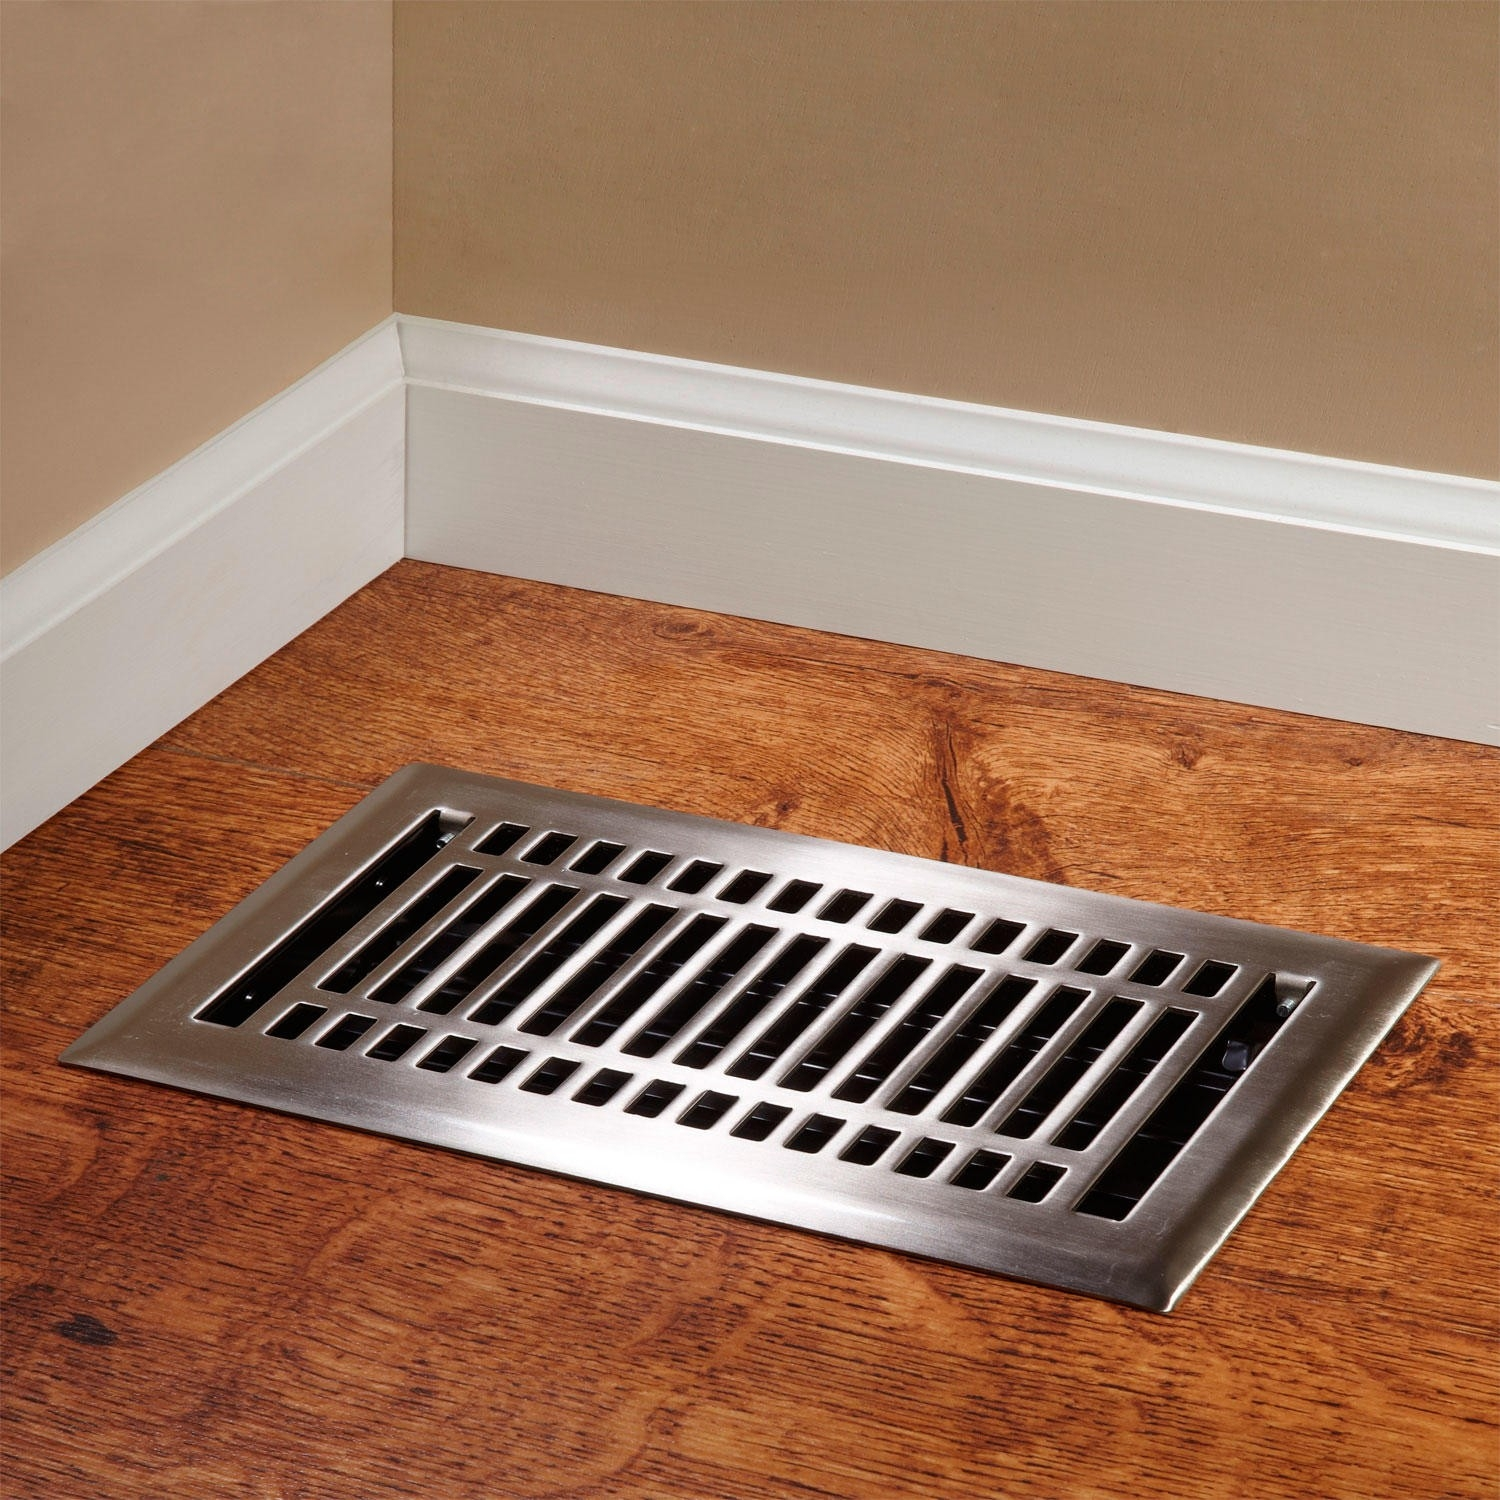 Wood Floor Air Vent Covers